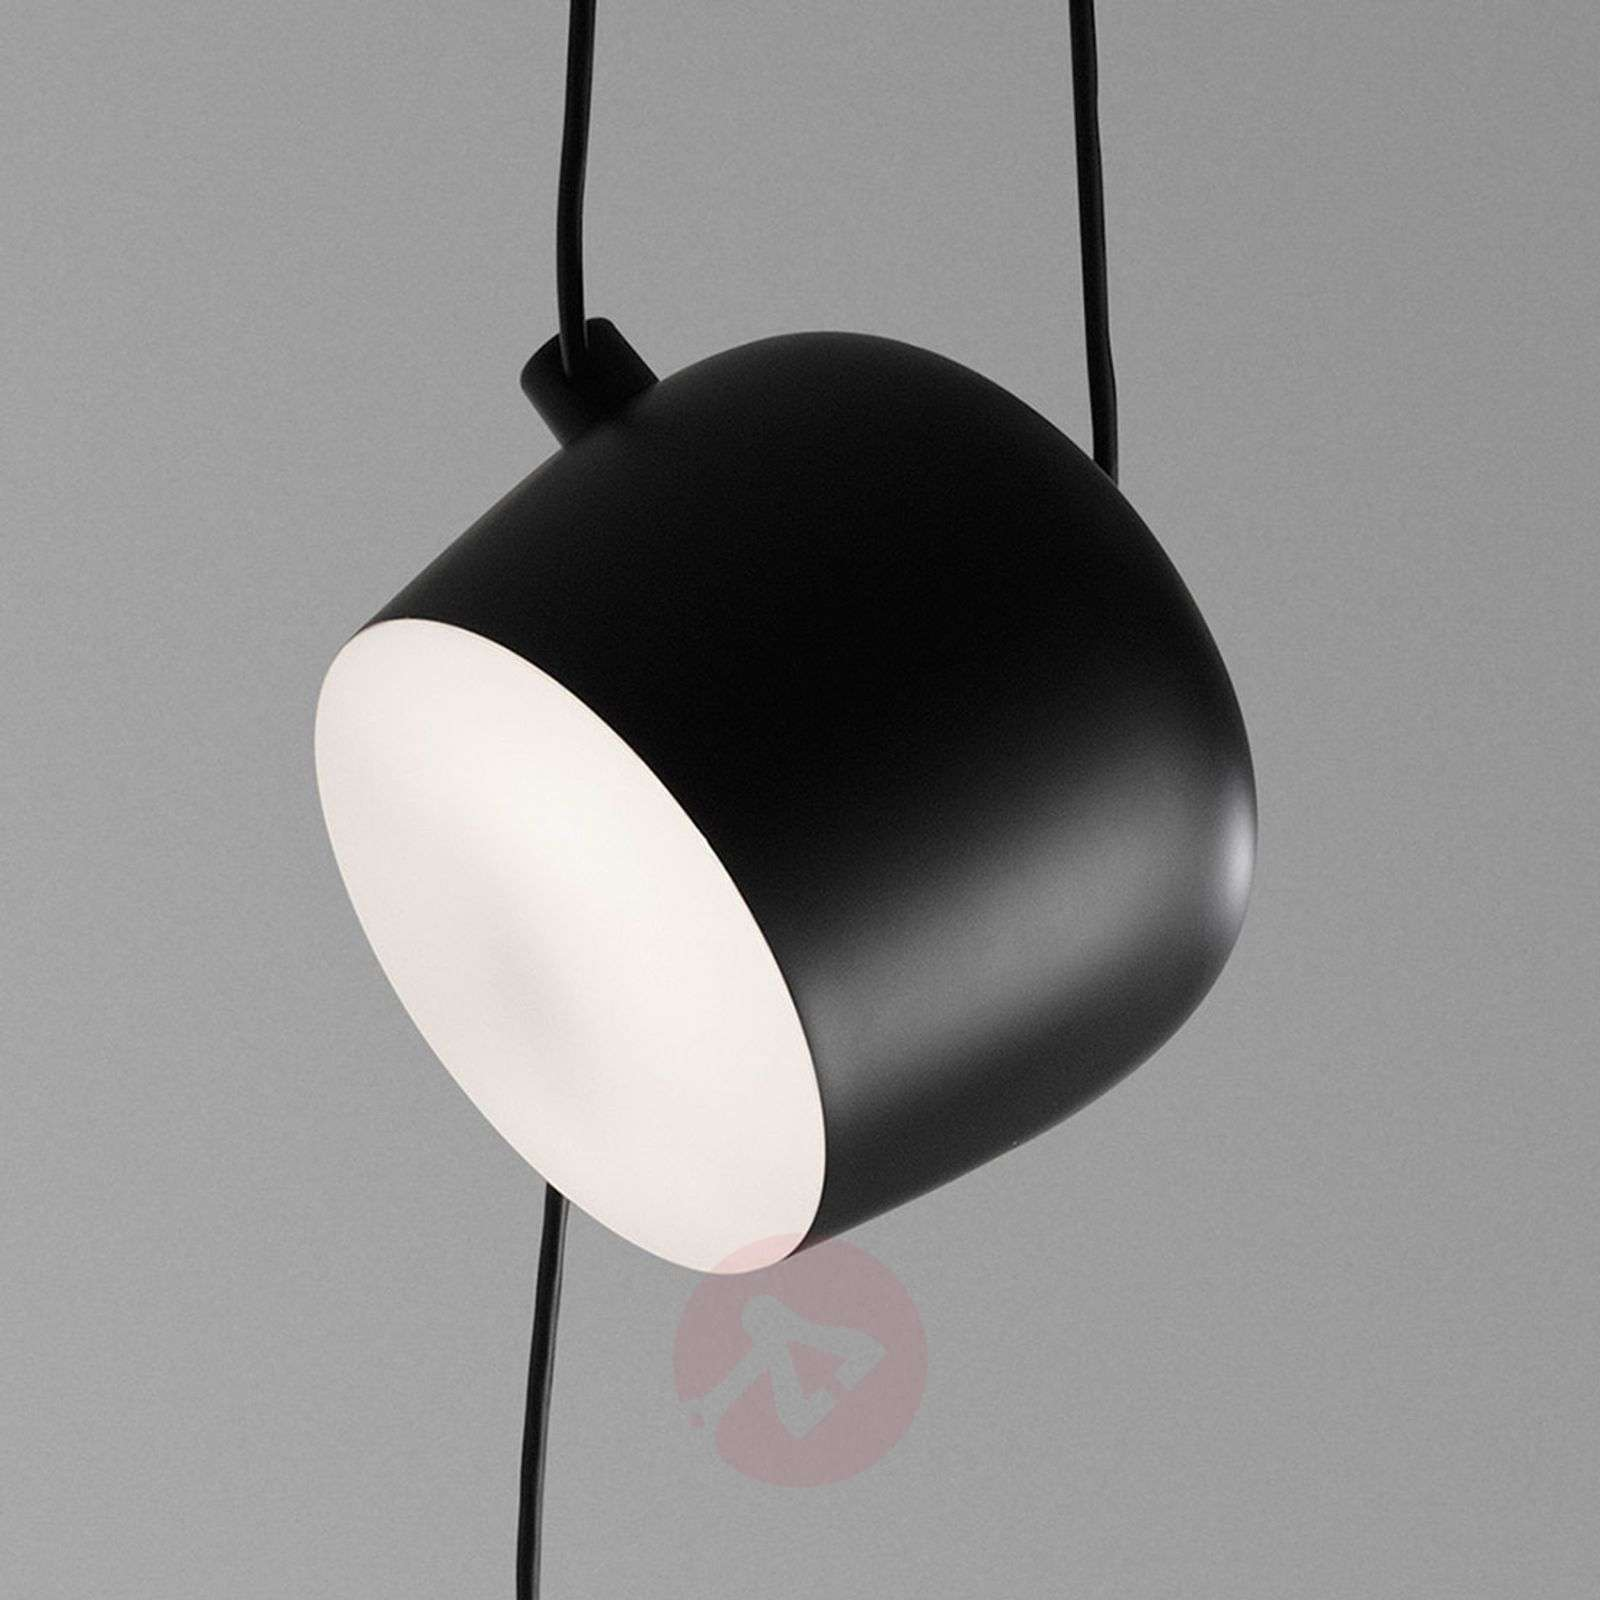 Suspension de conception FLOS Aim LED noir-3510271-07